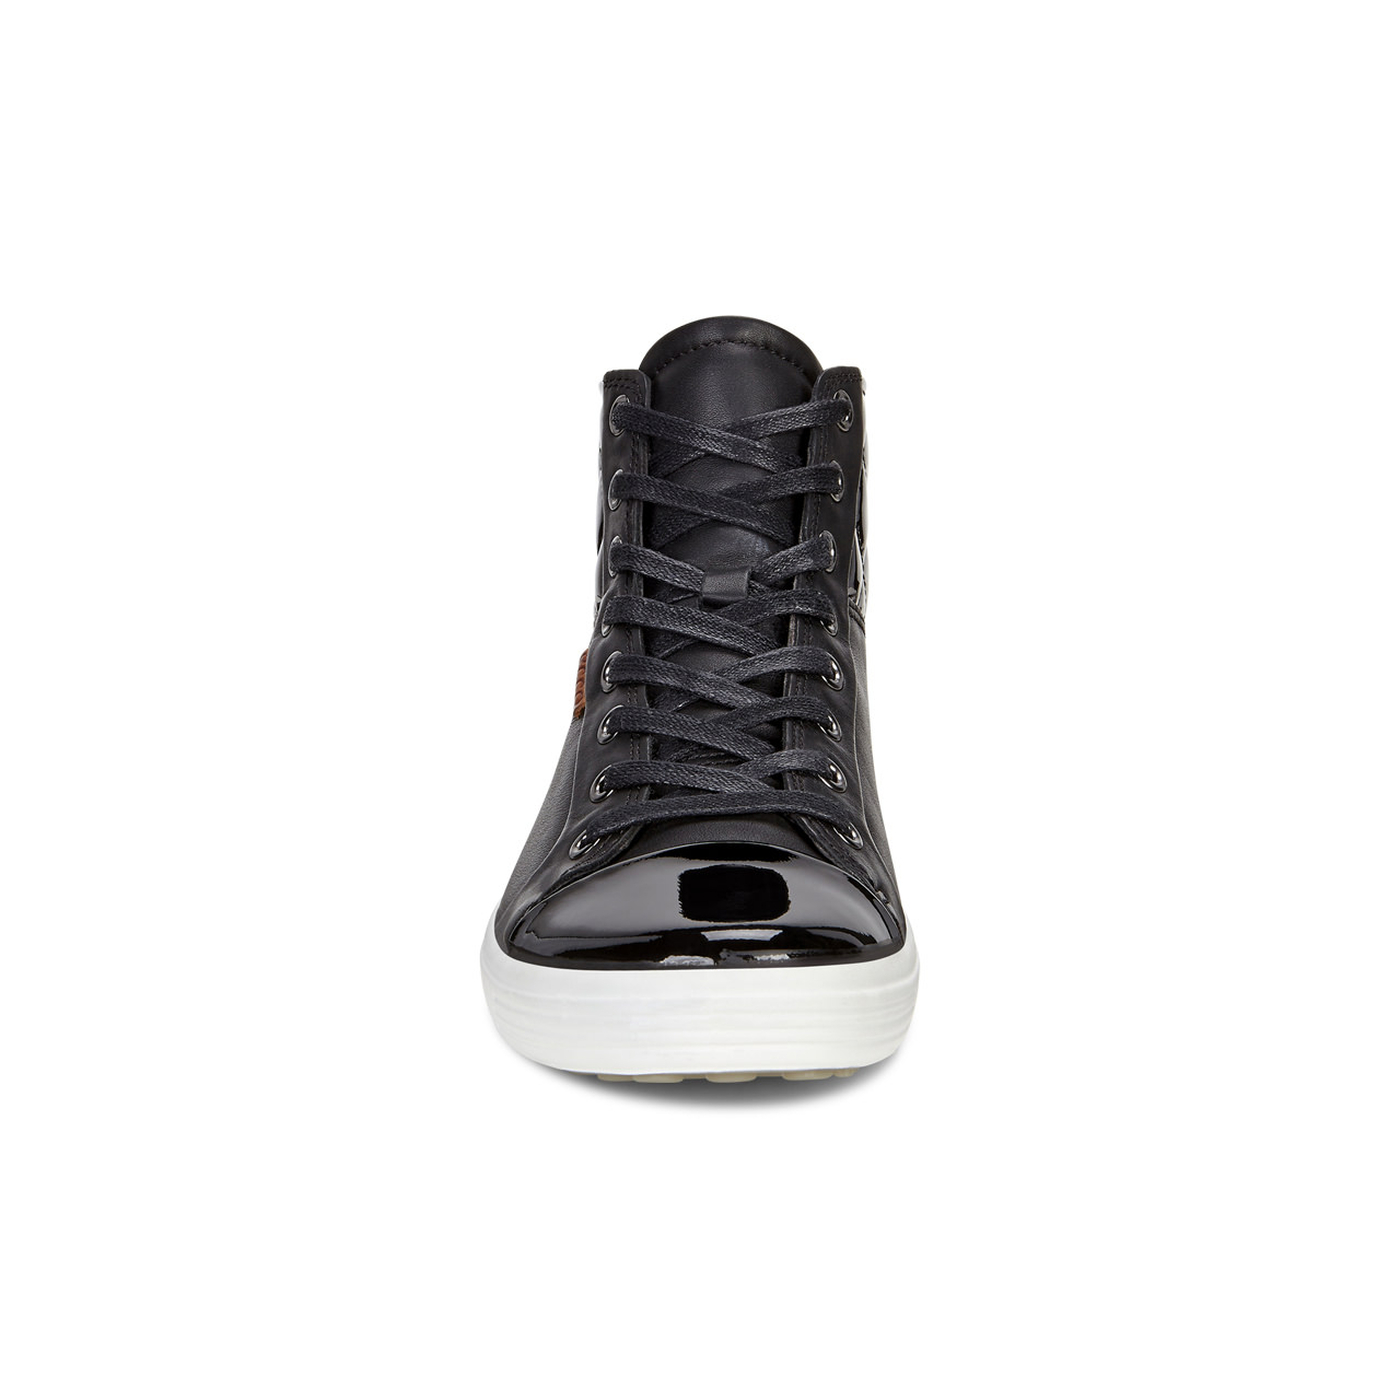 ECCO Soft 7 Quilted High Top